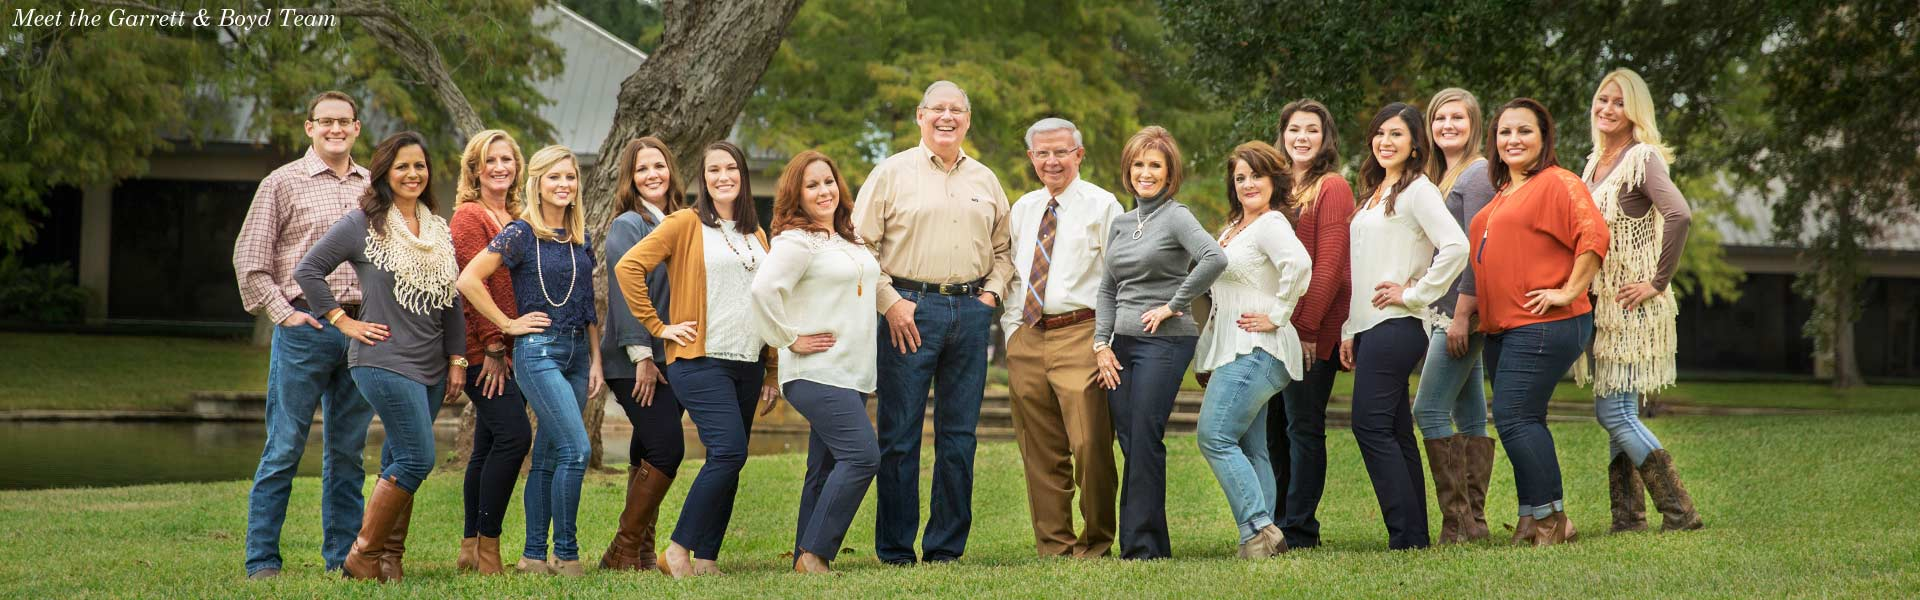 Meet the team Garrett & Boyd Orthodontics Rosenberg TX